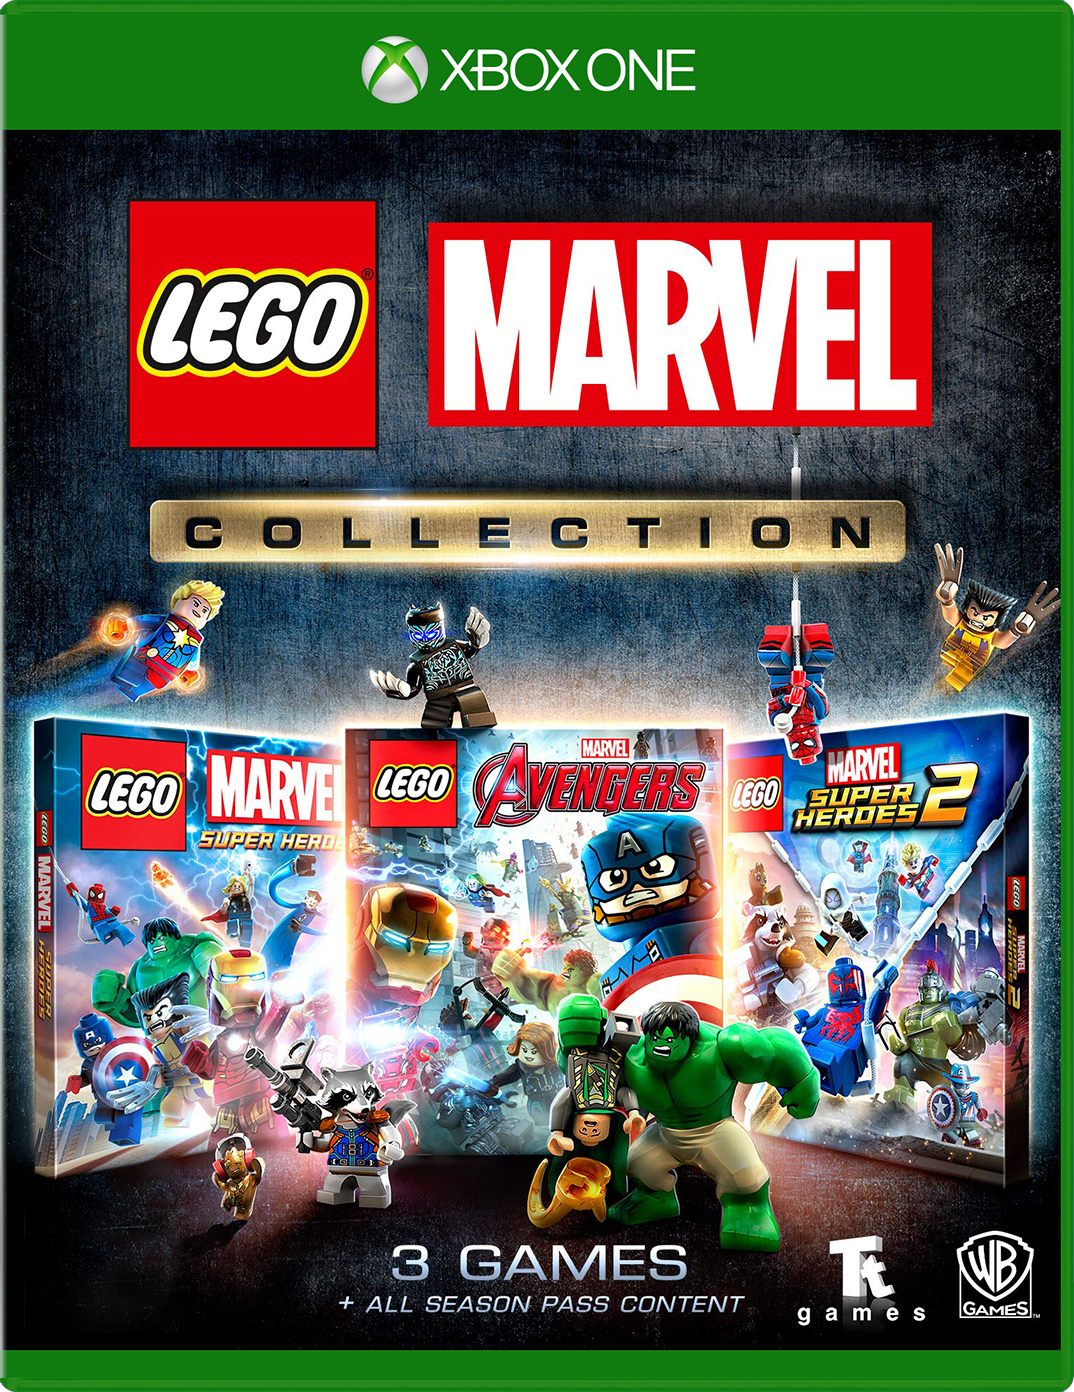 LEGO Marvel collection for Xbox One game box